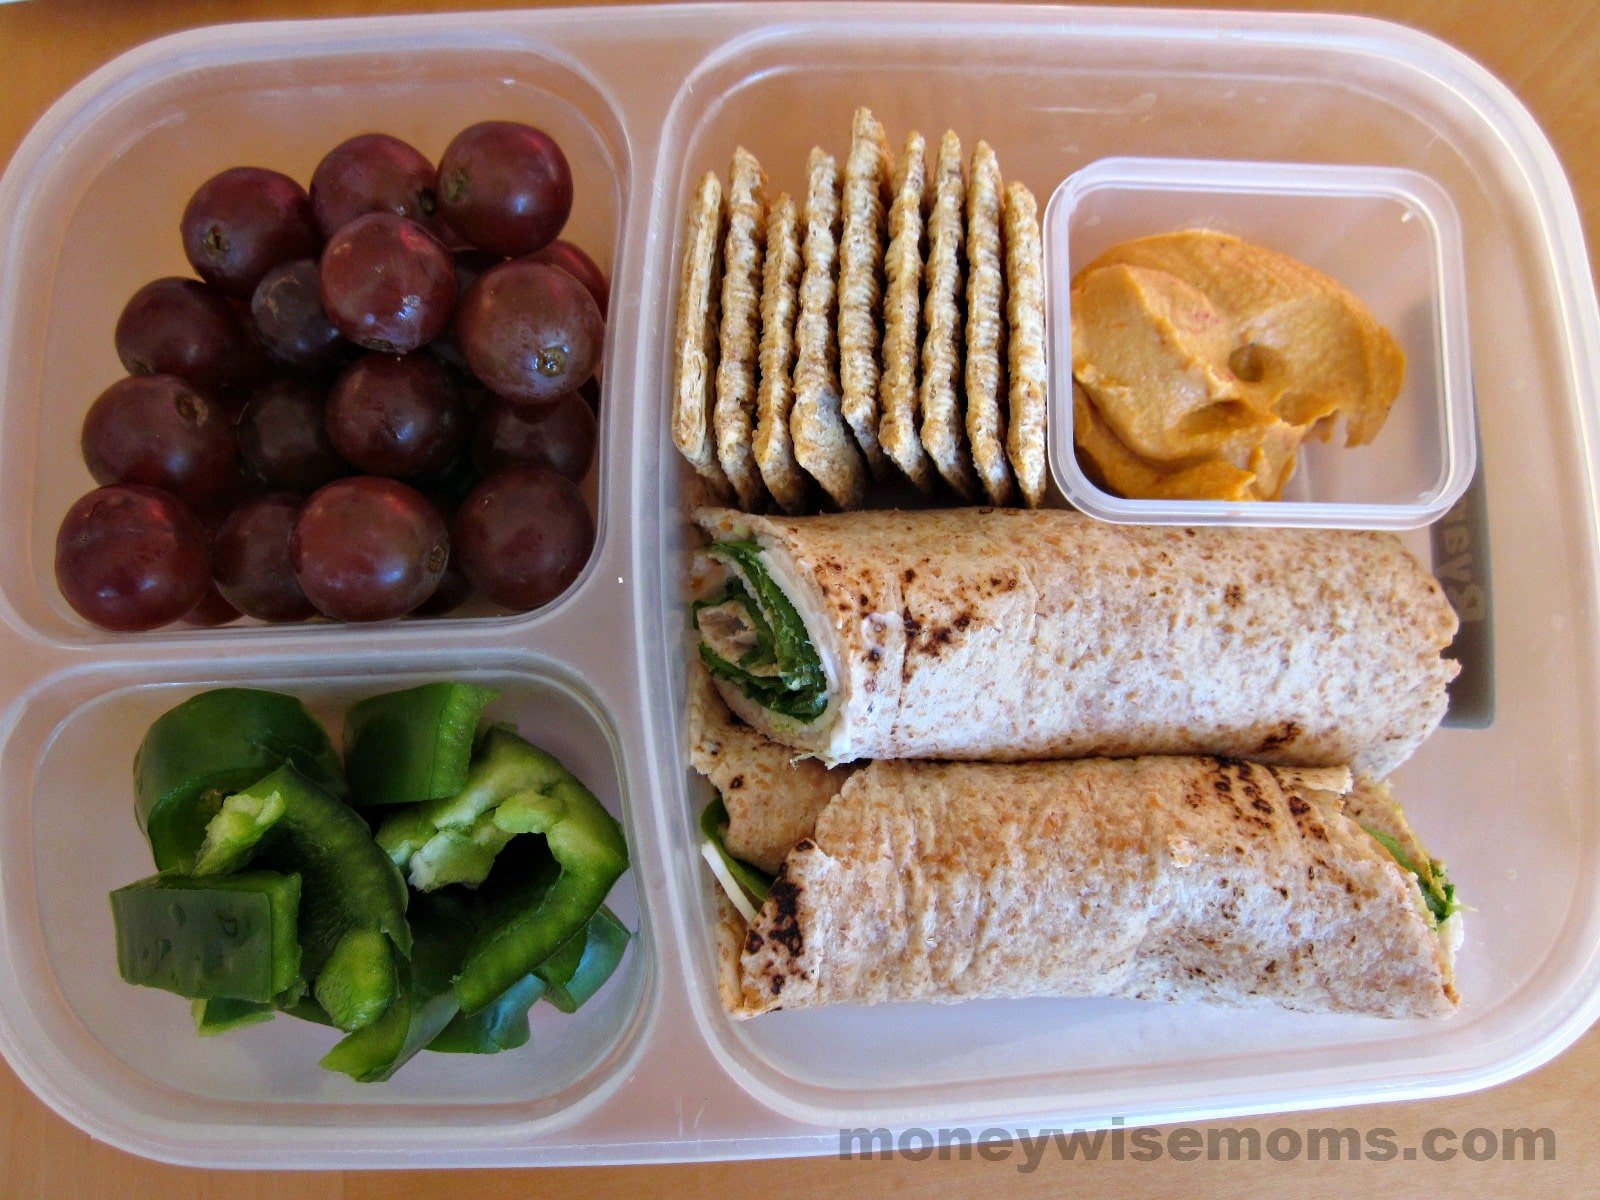 Healthy school lunches my kids 39 faves moneywise moms for Lunch food